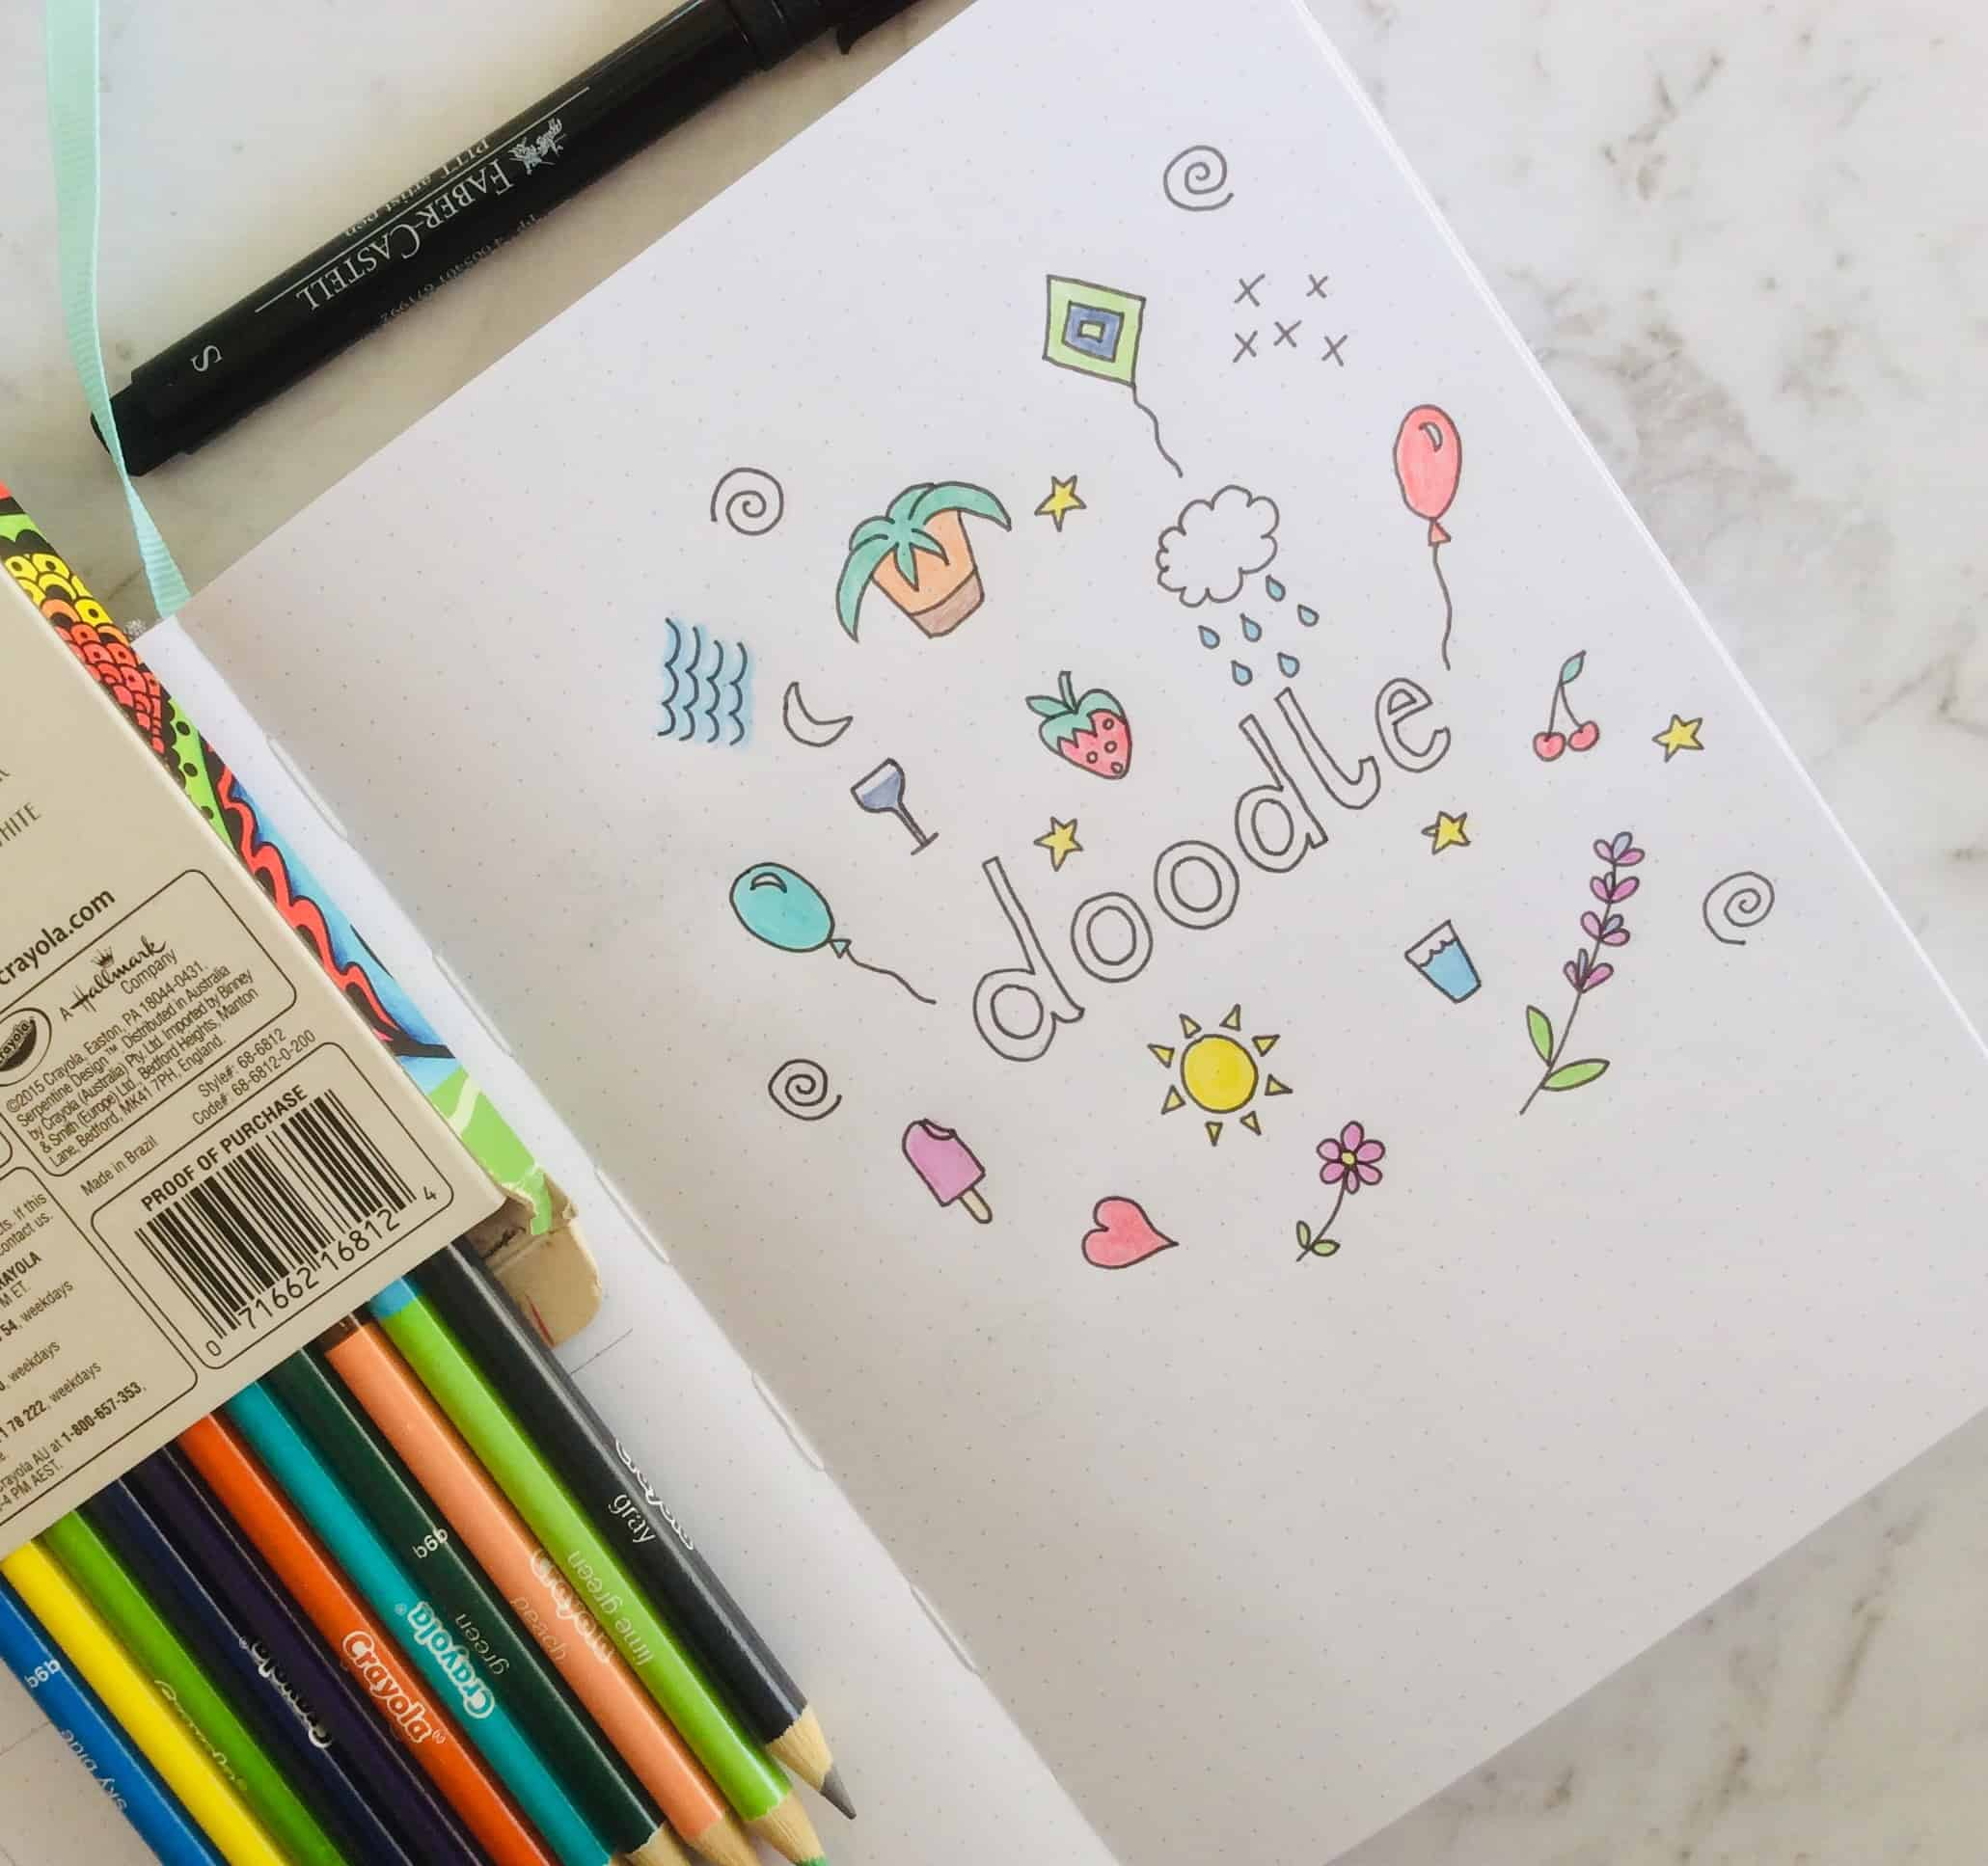 Ways to make your doodles look amazing